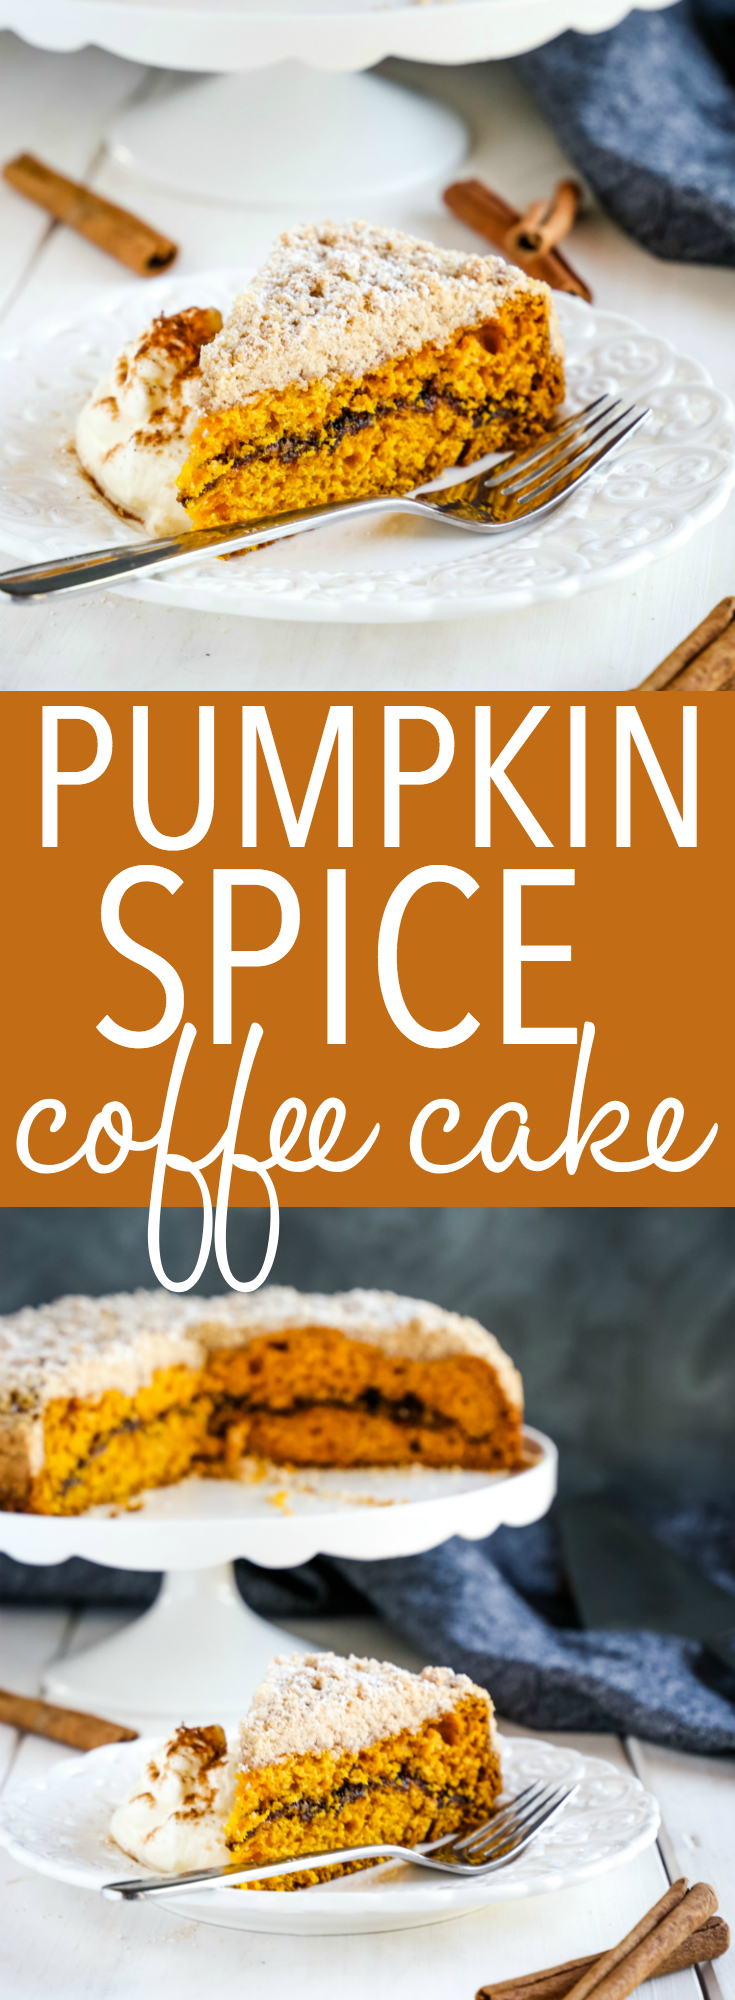 This Pumpkin Spice Coffee Cake is the perfect sweet treat for fall! It's an easy-to-make moist pumpkin cake with cinnamon sugar swirl and the perfect coffee cake crumble topping! Recipe from thebusybaker.ca! #pumpkin #pumpkinspice #cake #dessert #autumn #recipe #layercake #cinnamon #cinnamonsugar #sweet #treat #homemade #homesteading #coffee #coffeecake